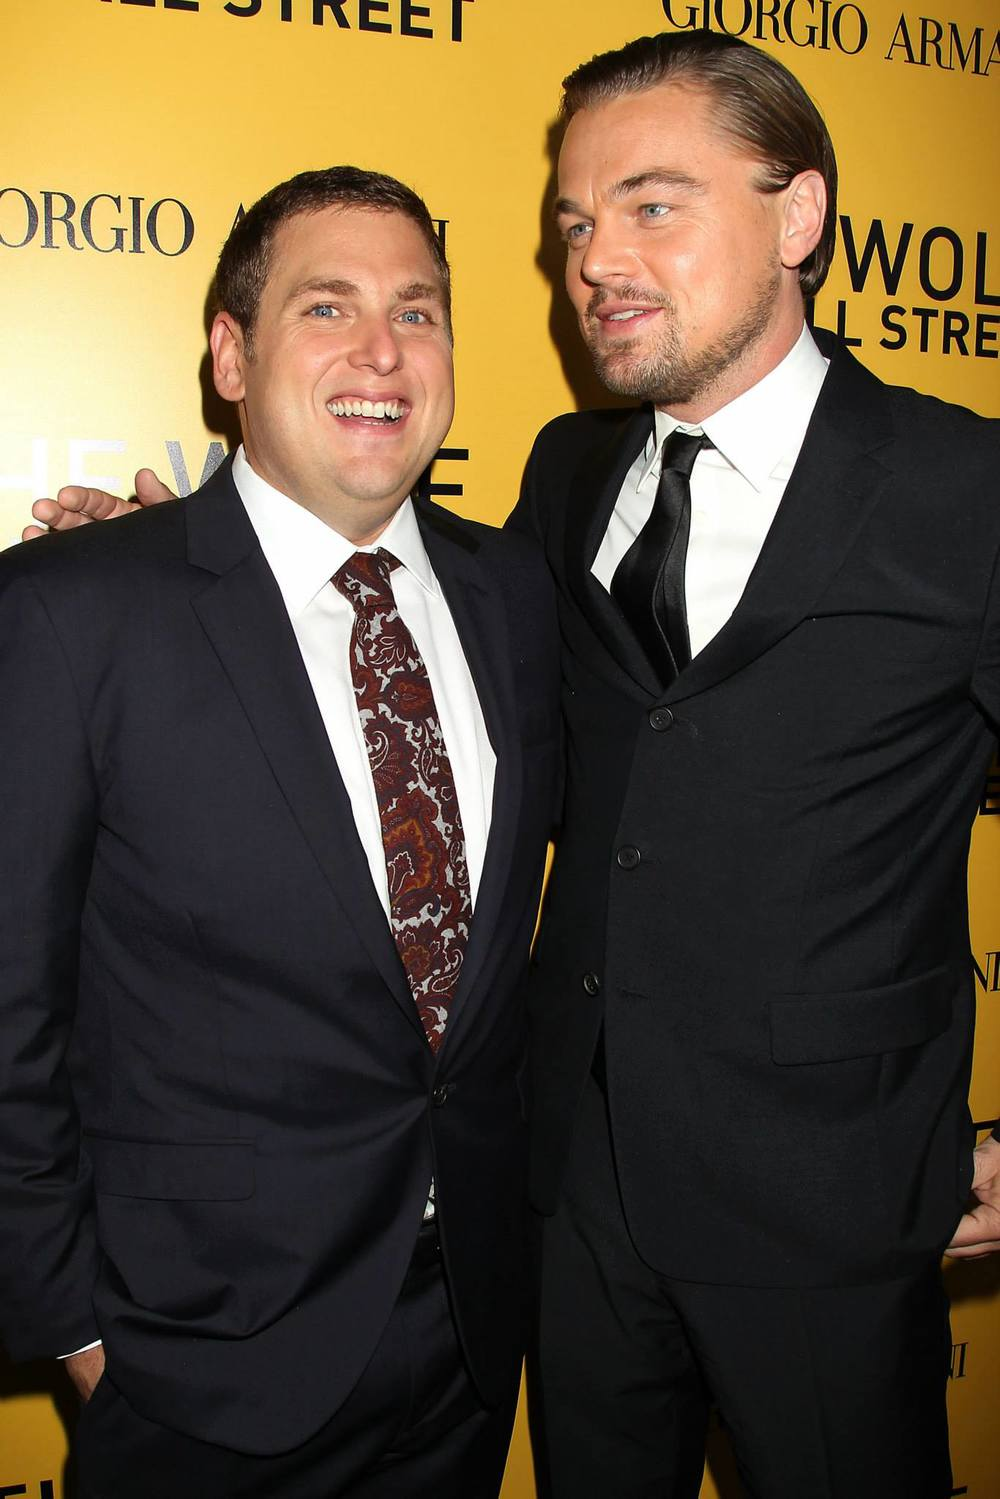 jonah-hill-leonardo-dicaprio-at-the-new-york-city-premiere-of-the-wolf-of-wall-street-red-granite-pictures-red-granite-international.jpg